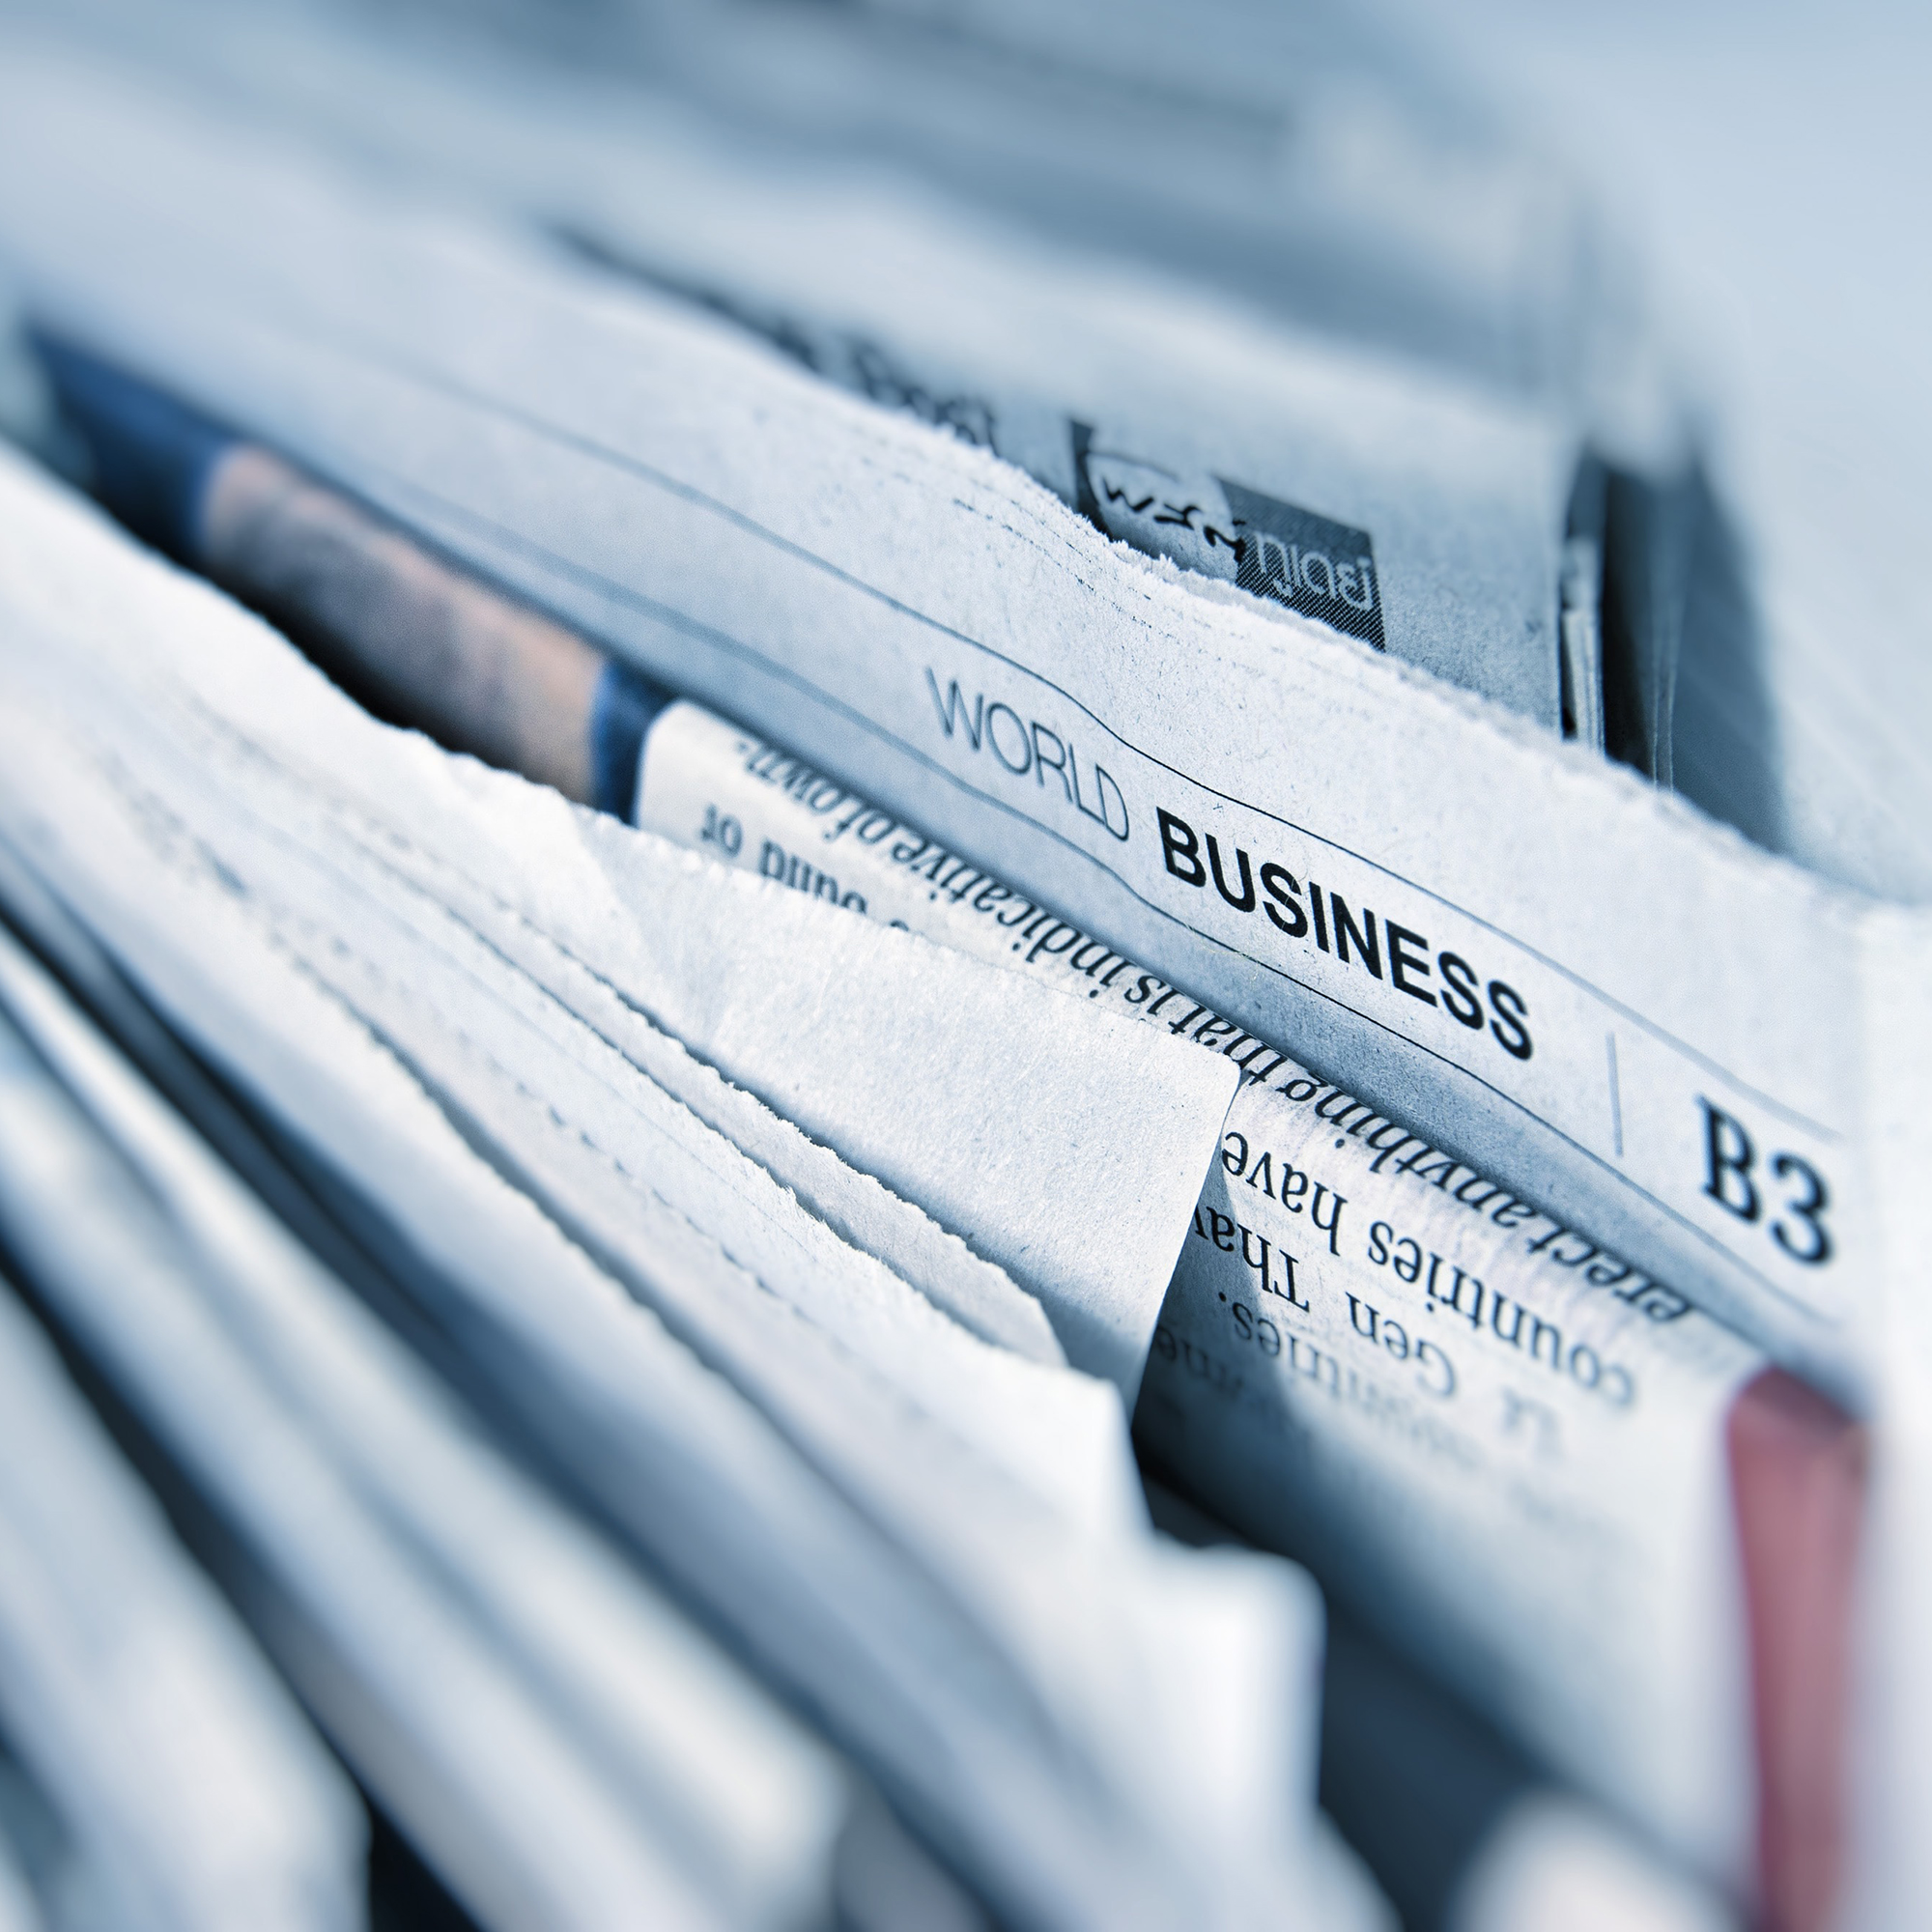 closeup photo of newspapers